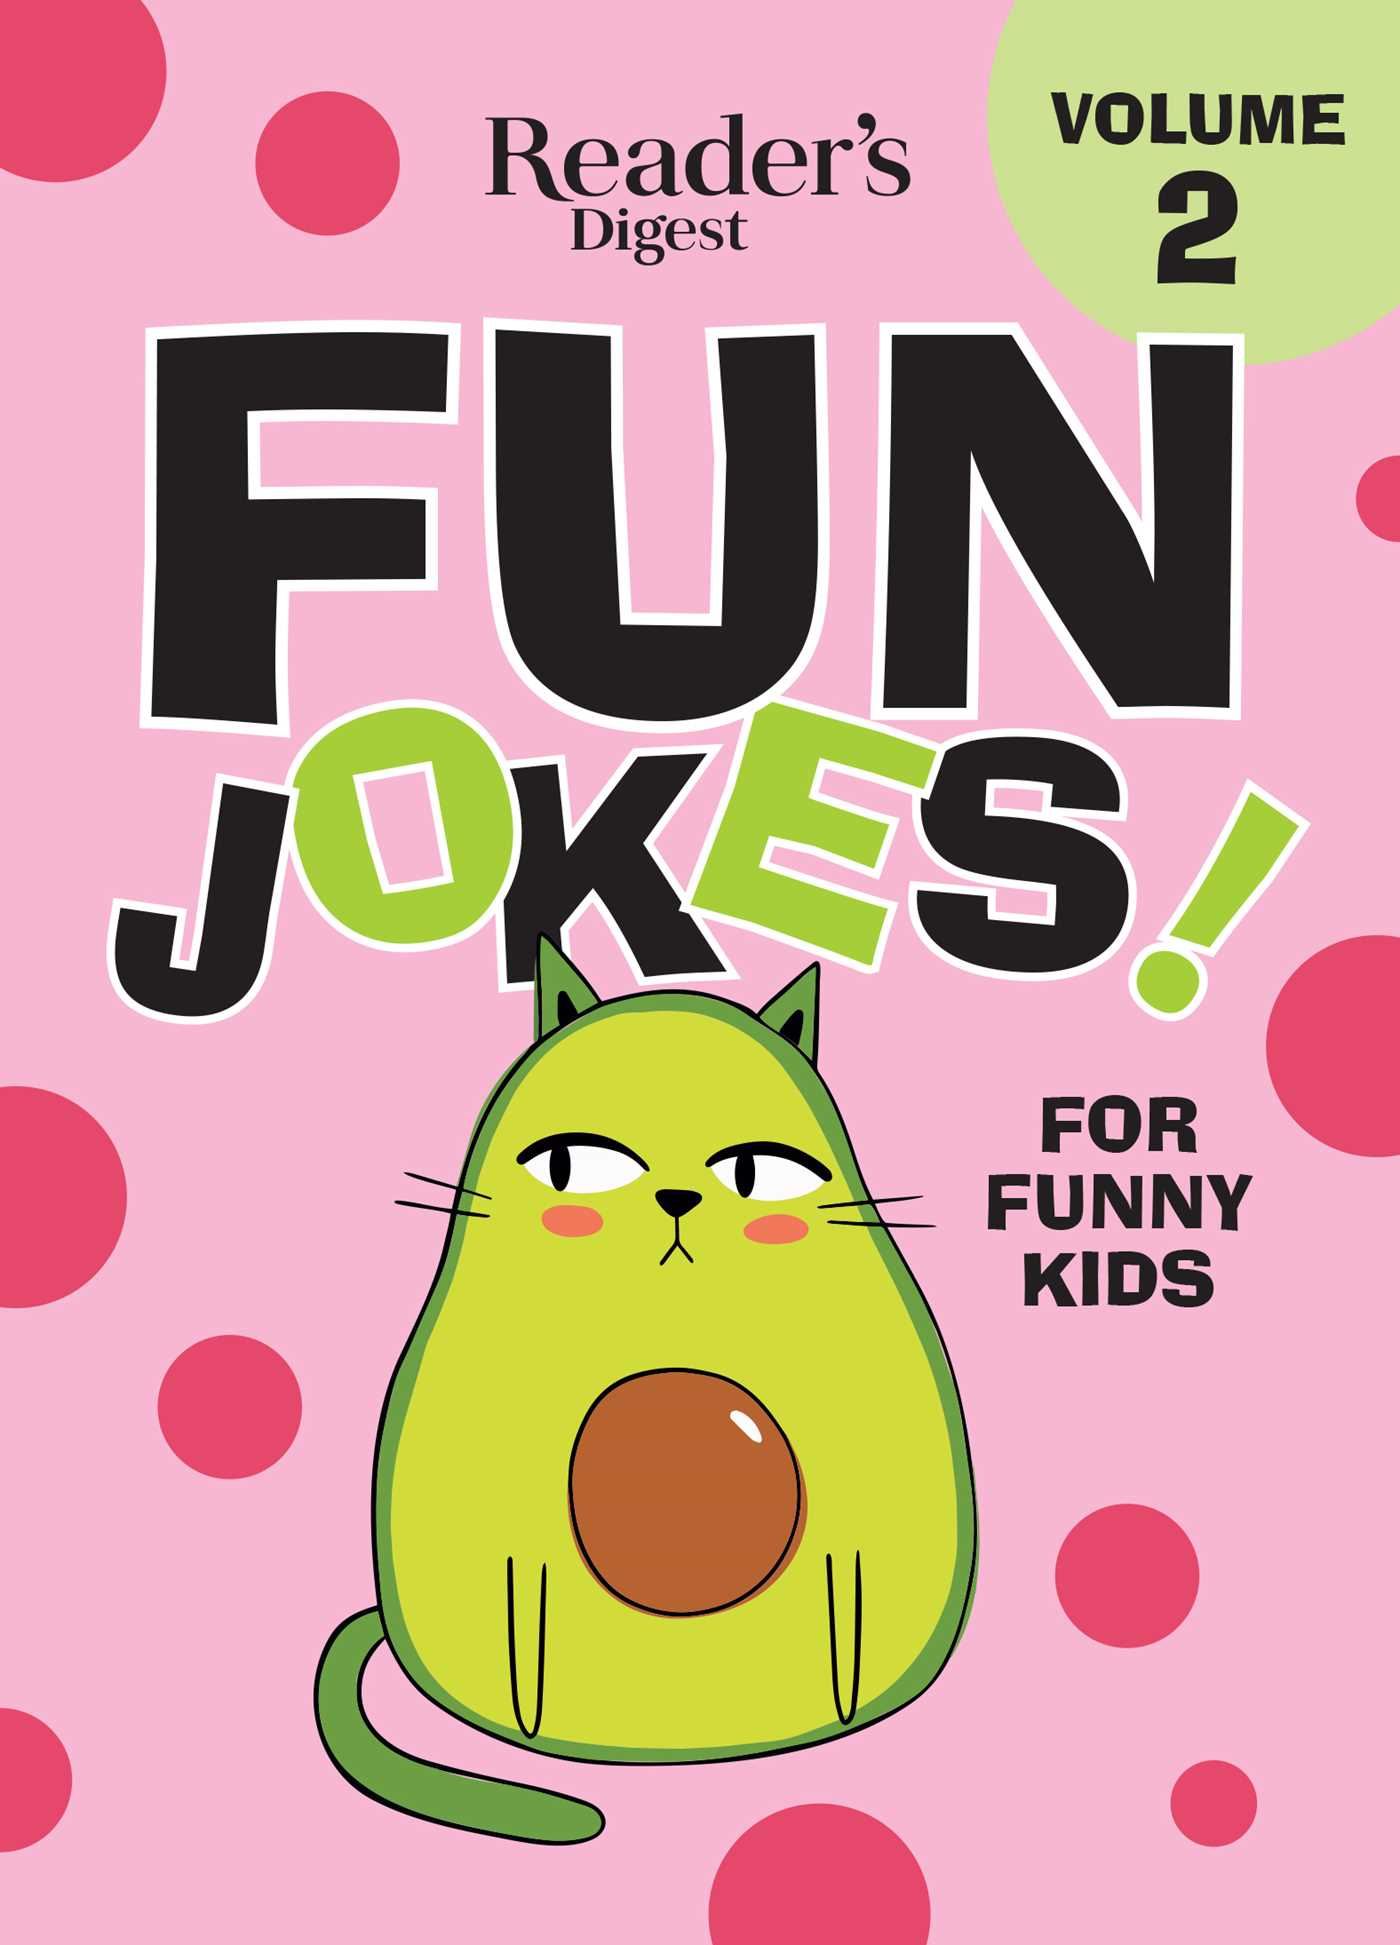 Reader's Digest Fun Jokes for Funny Kids Vol  2 | Book by Reader's